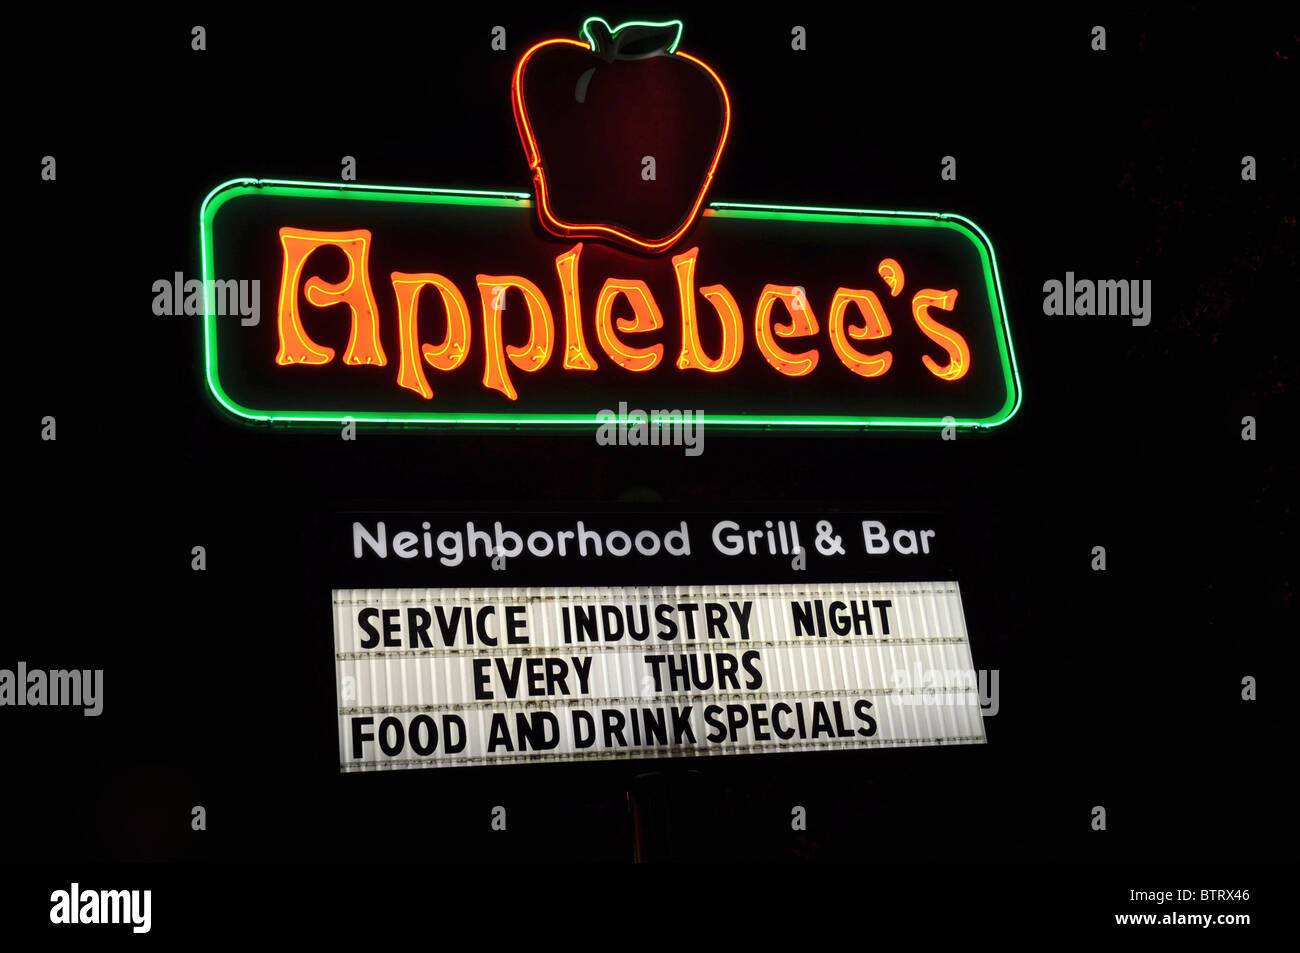 Applebees Restaurant Stock Photos  Applebees Restaurant